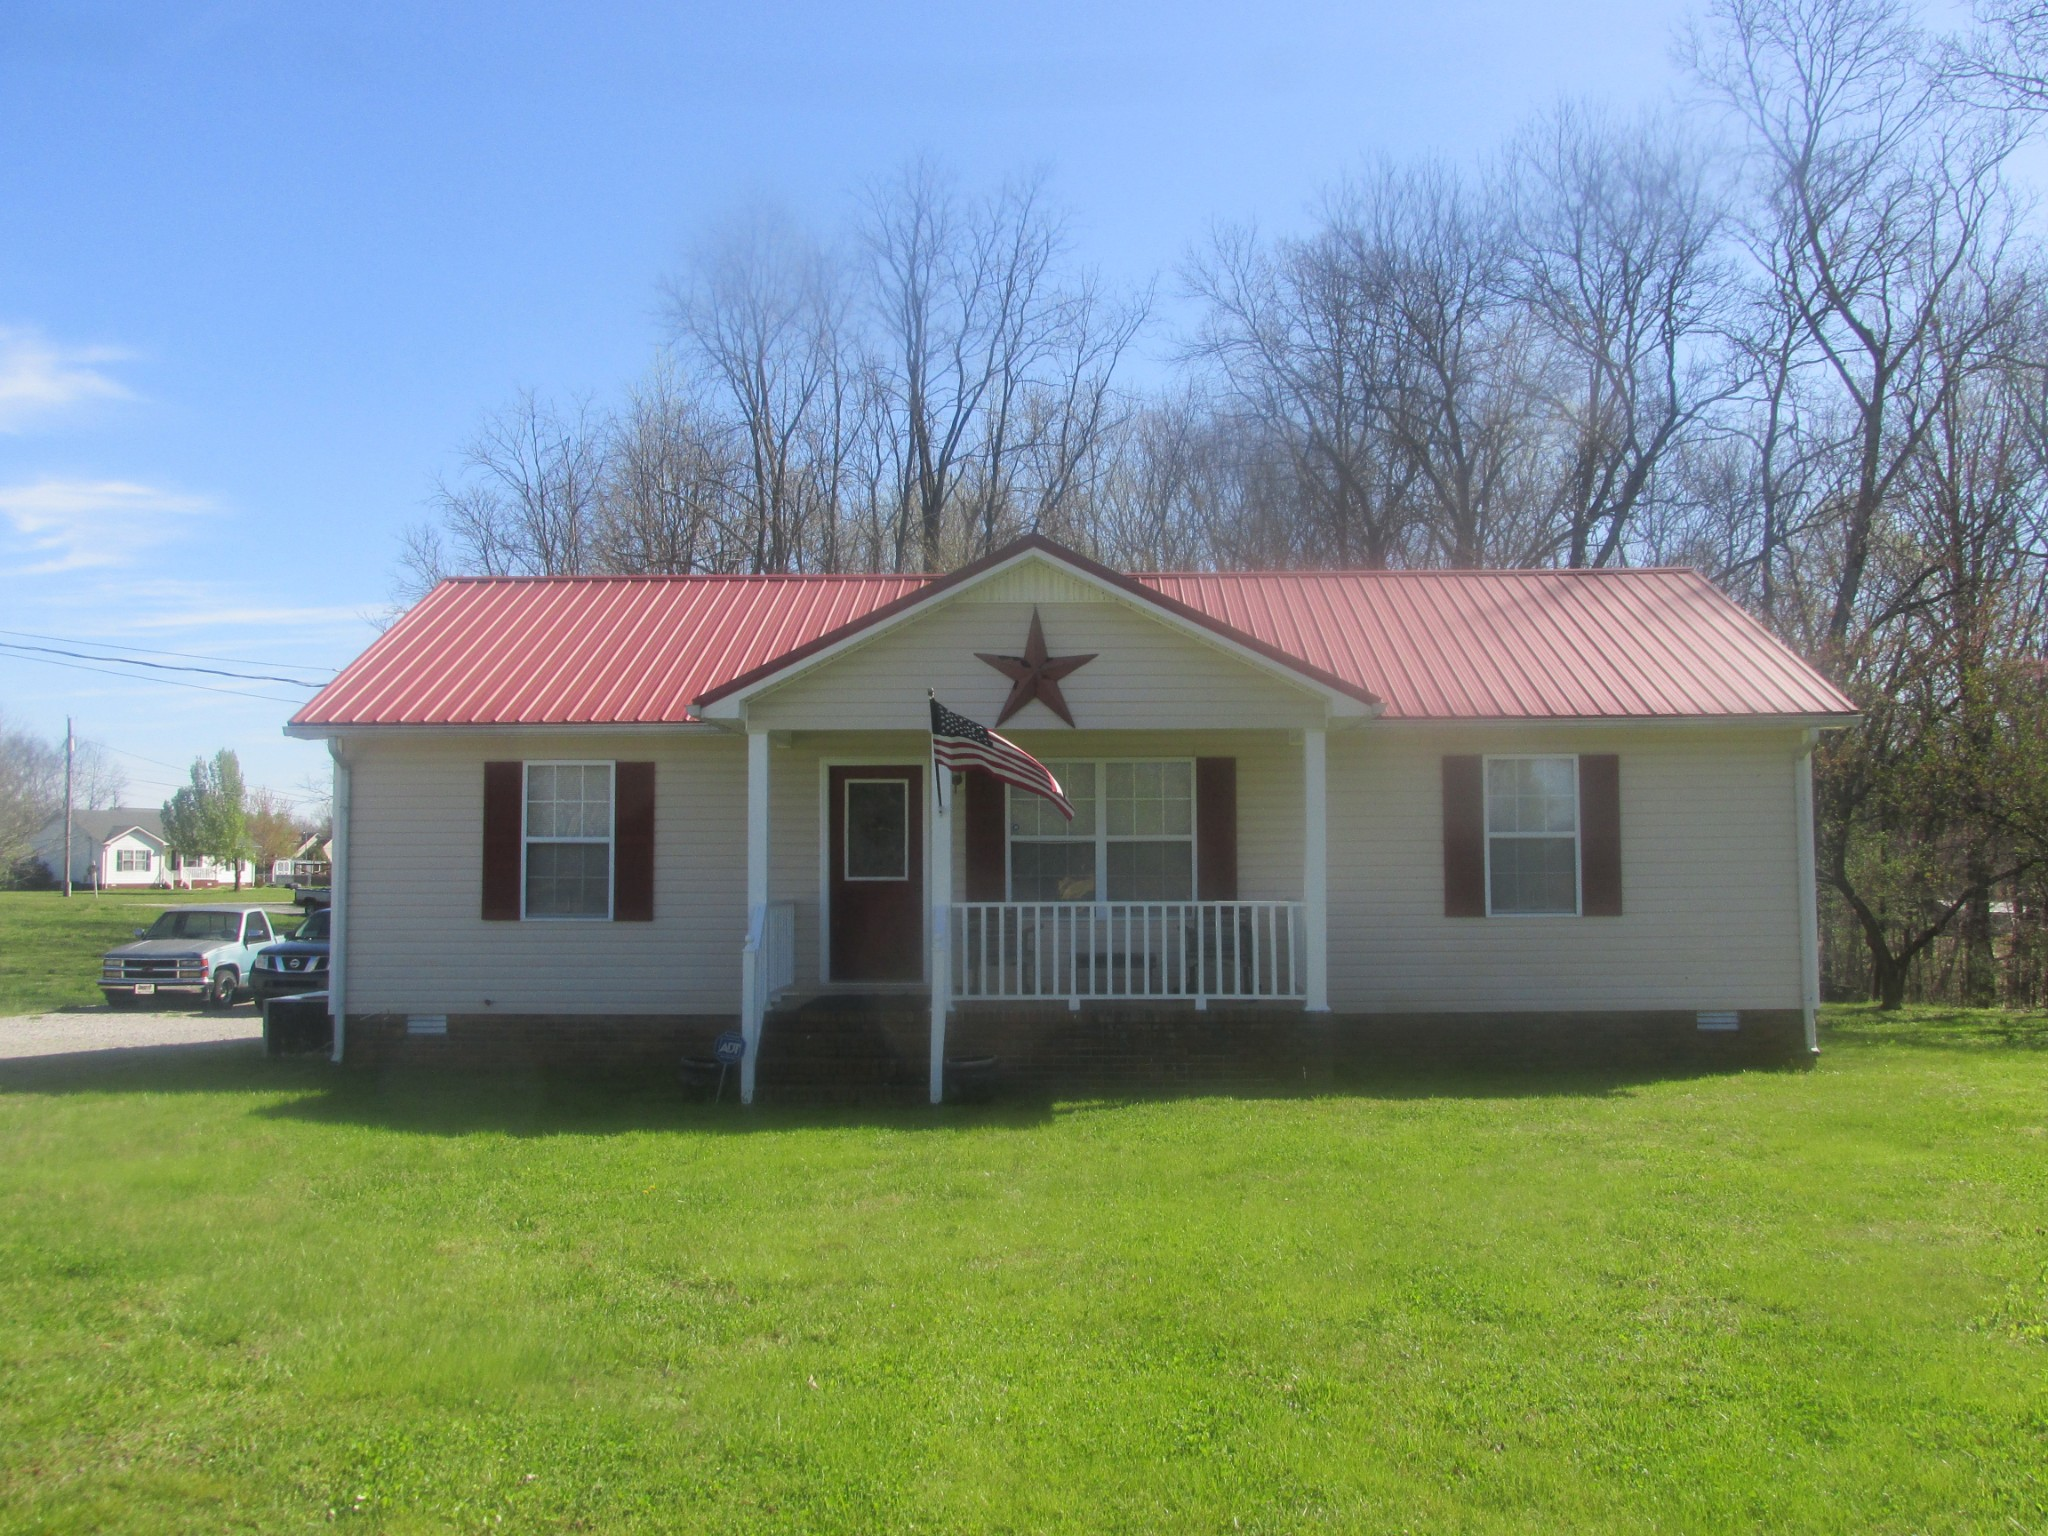 255 Maxwell Hill Rd, Pulaski, Tennessee 38478, 3 Bedrooms Bedrooms, ,2 BathroomsBathrooms,Single Family,For Sale,255 Maxwell Hill Rd,1,2240404